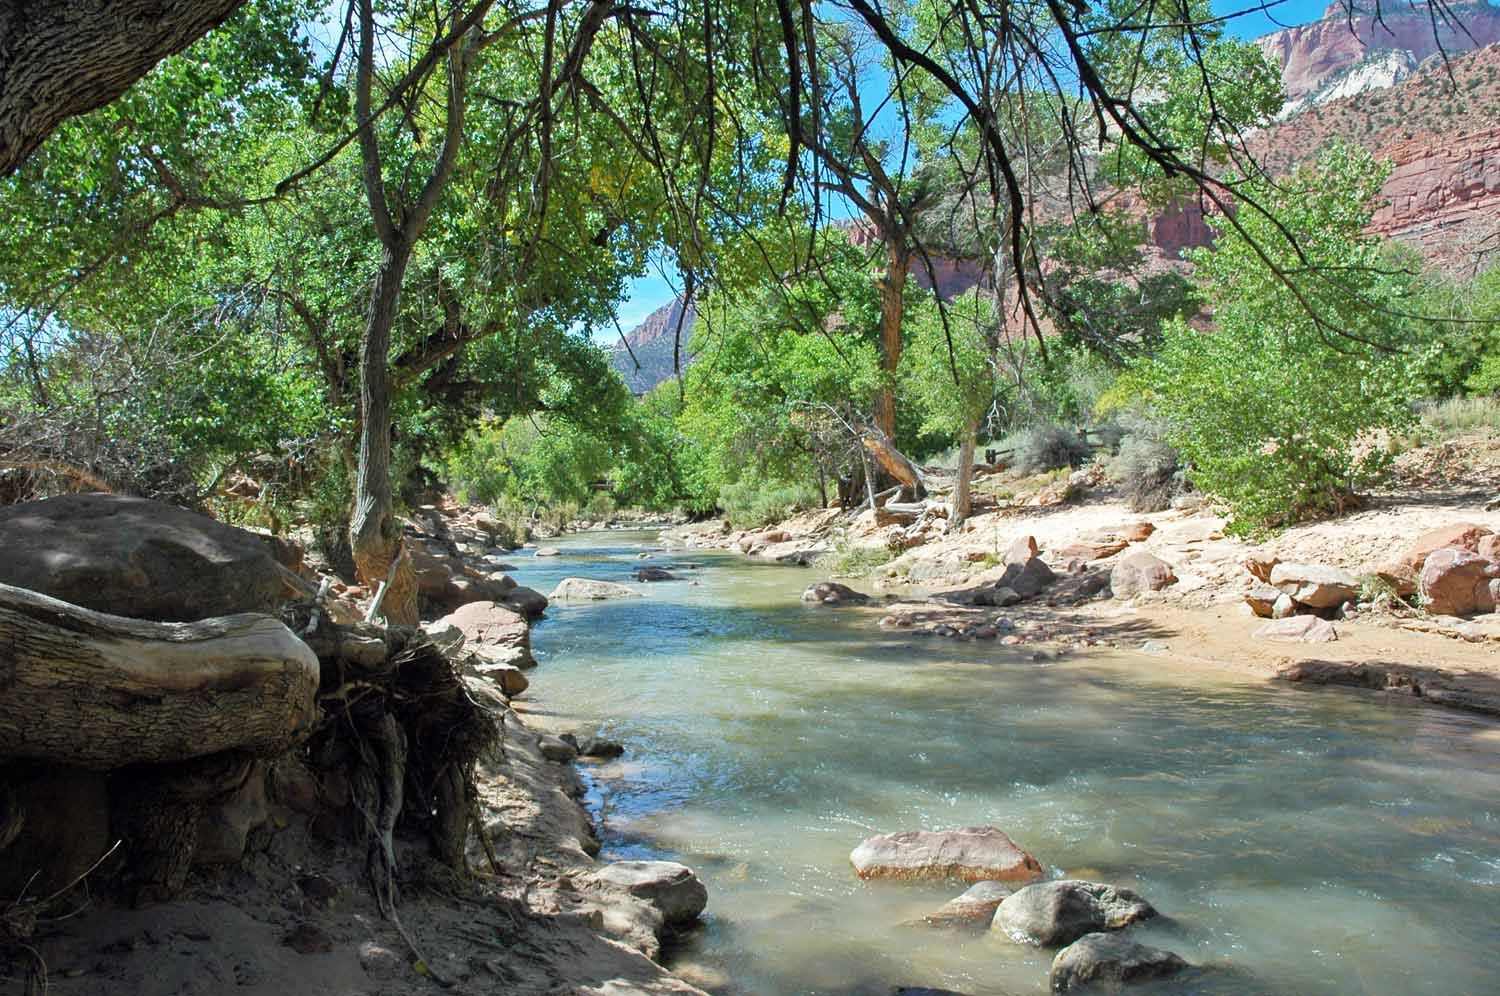 Watchman trail start and ends at the river...took off my shoes and soaked my feet in the cold water at the end...